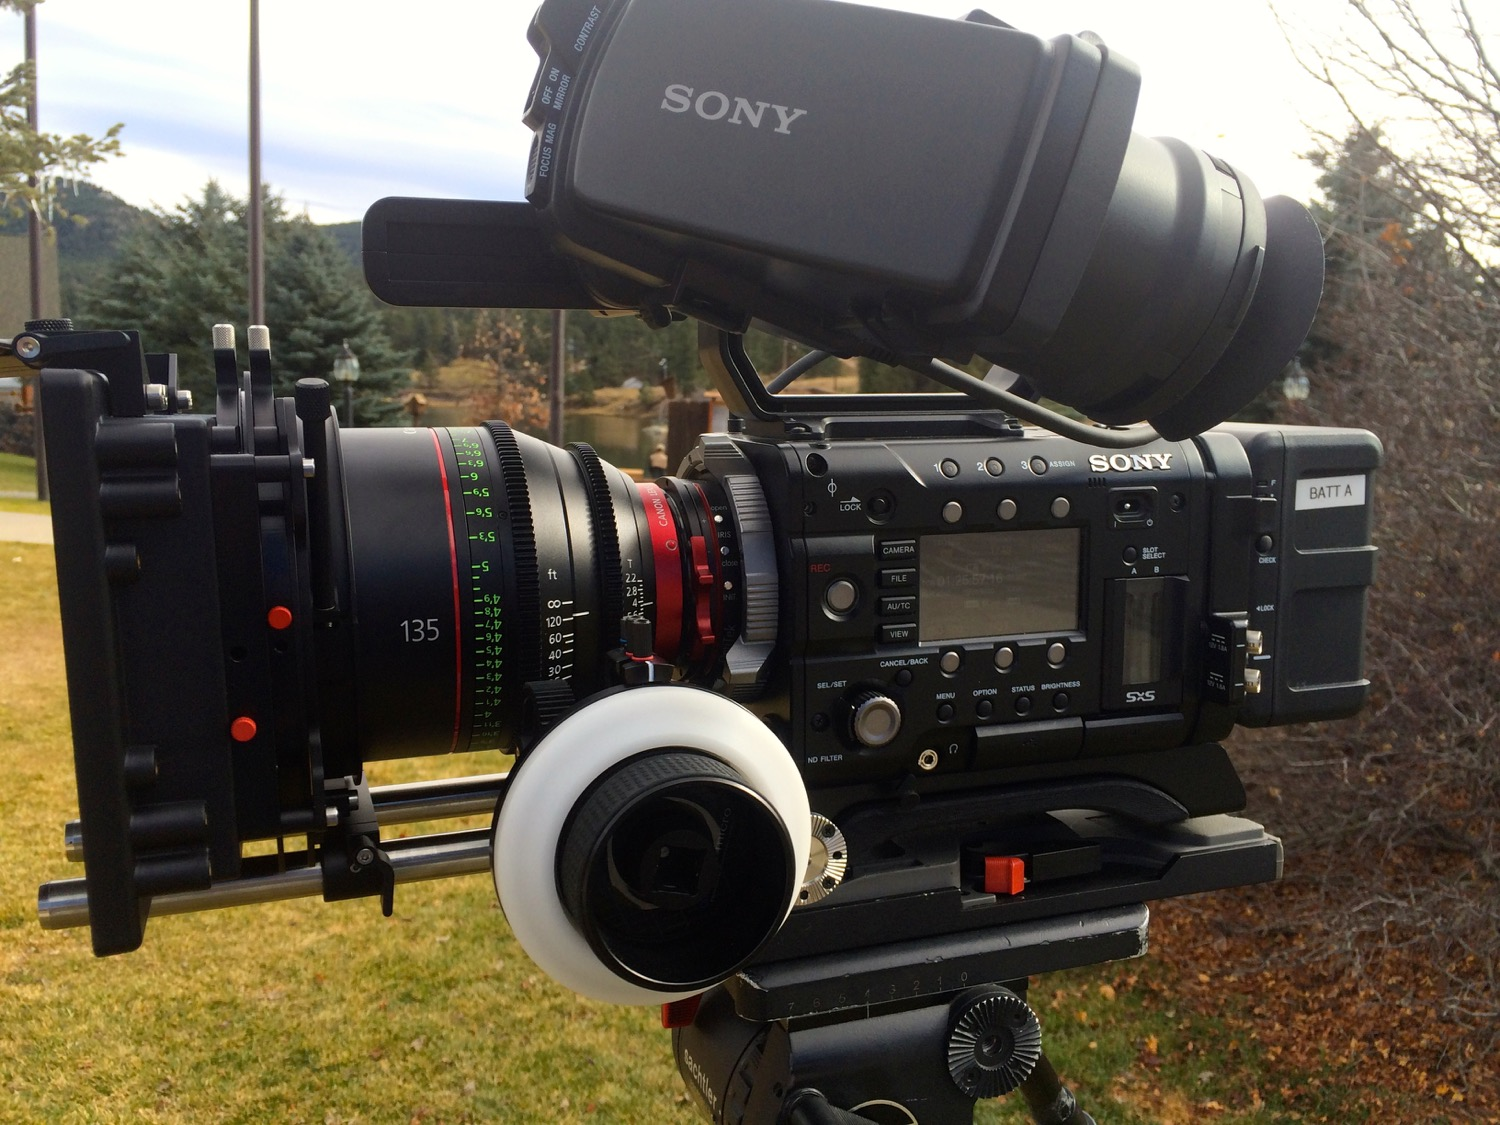 Sony PMW-F55 Camera with Canon Prime Lens